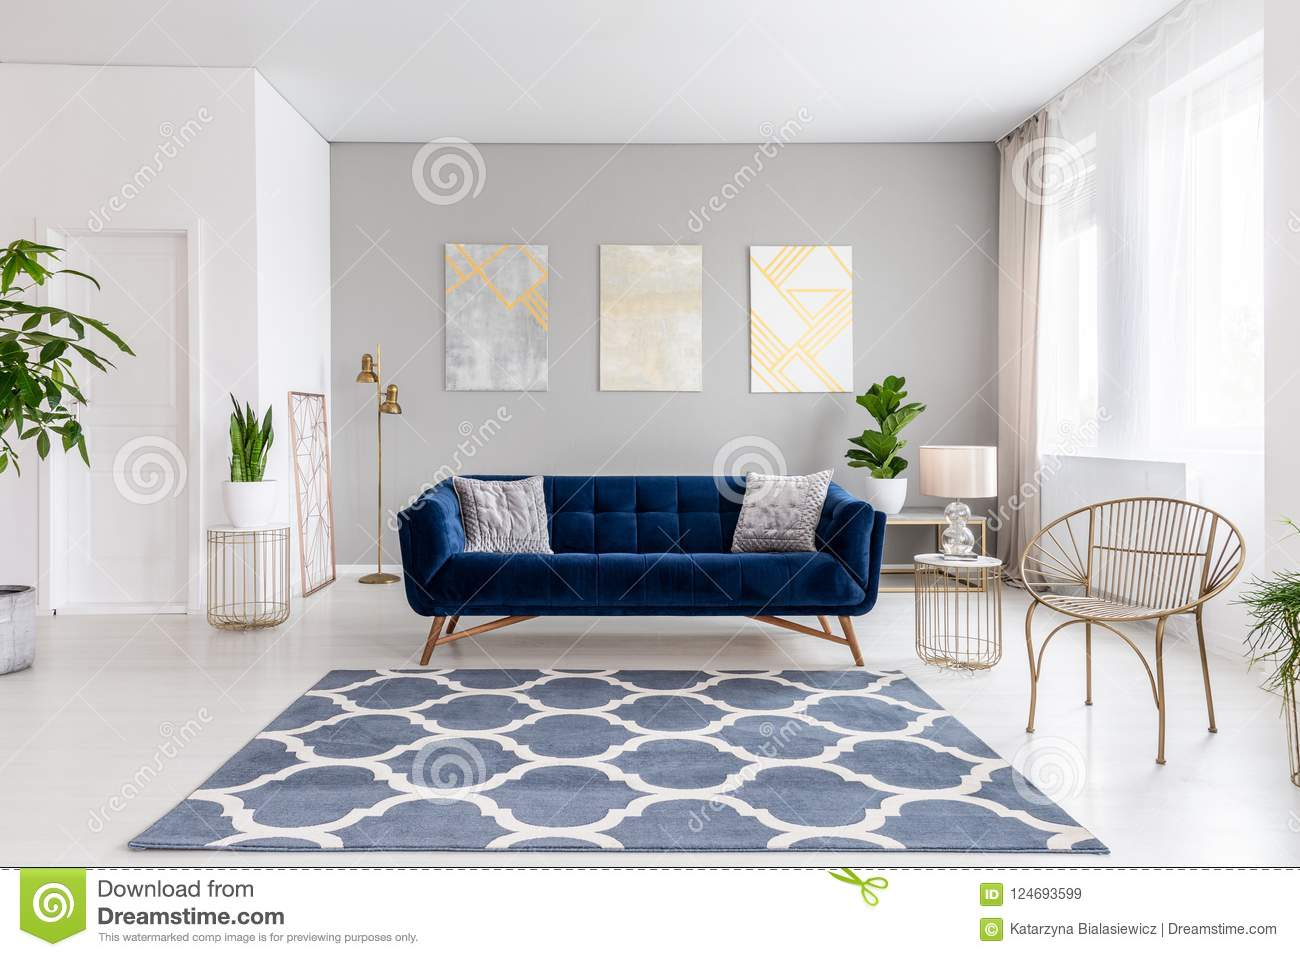 real photo of bright living room interior with royal blue couch